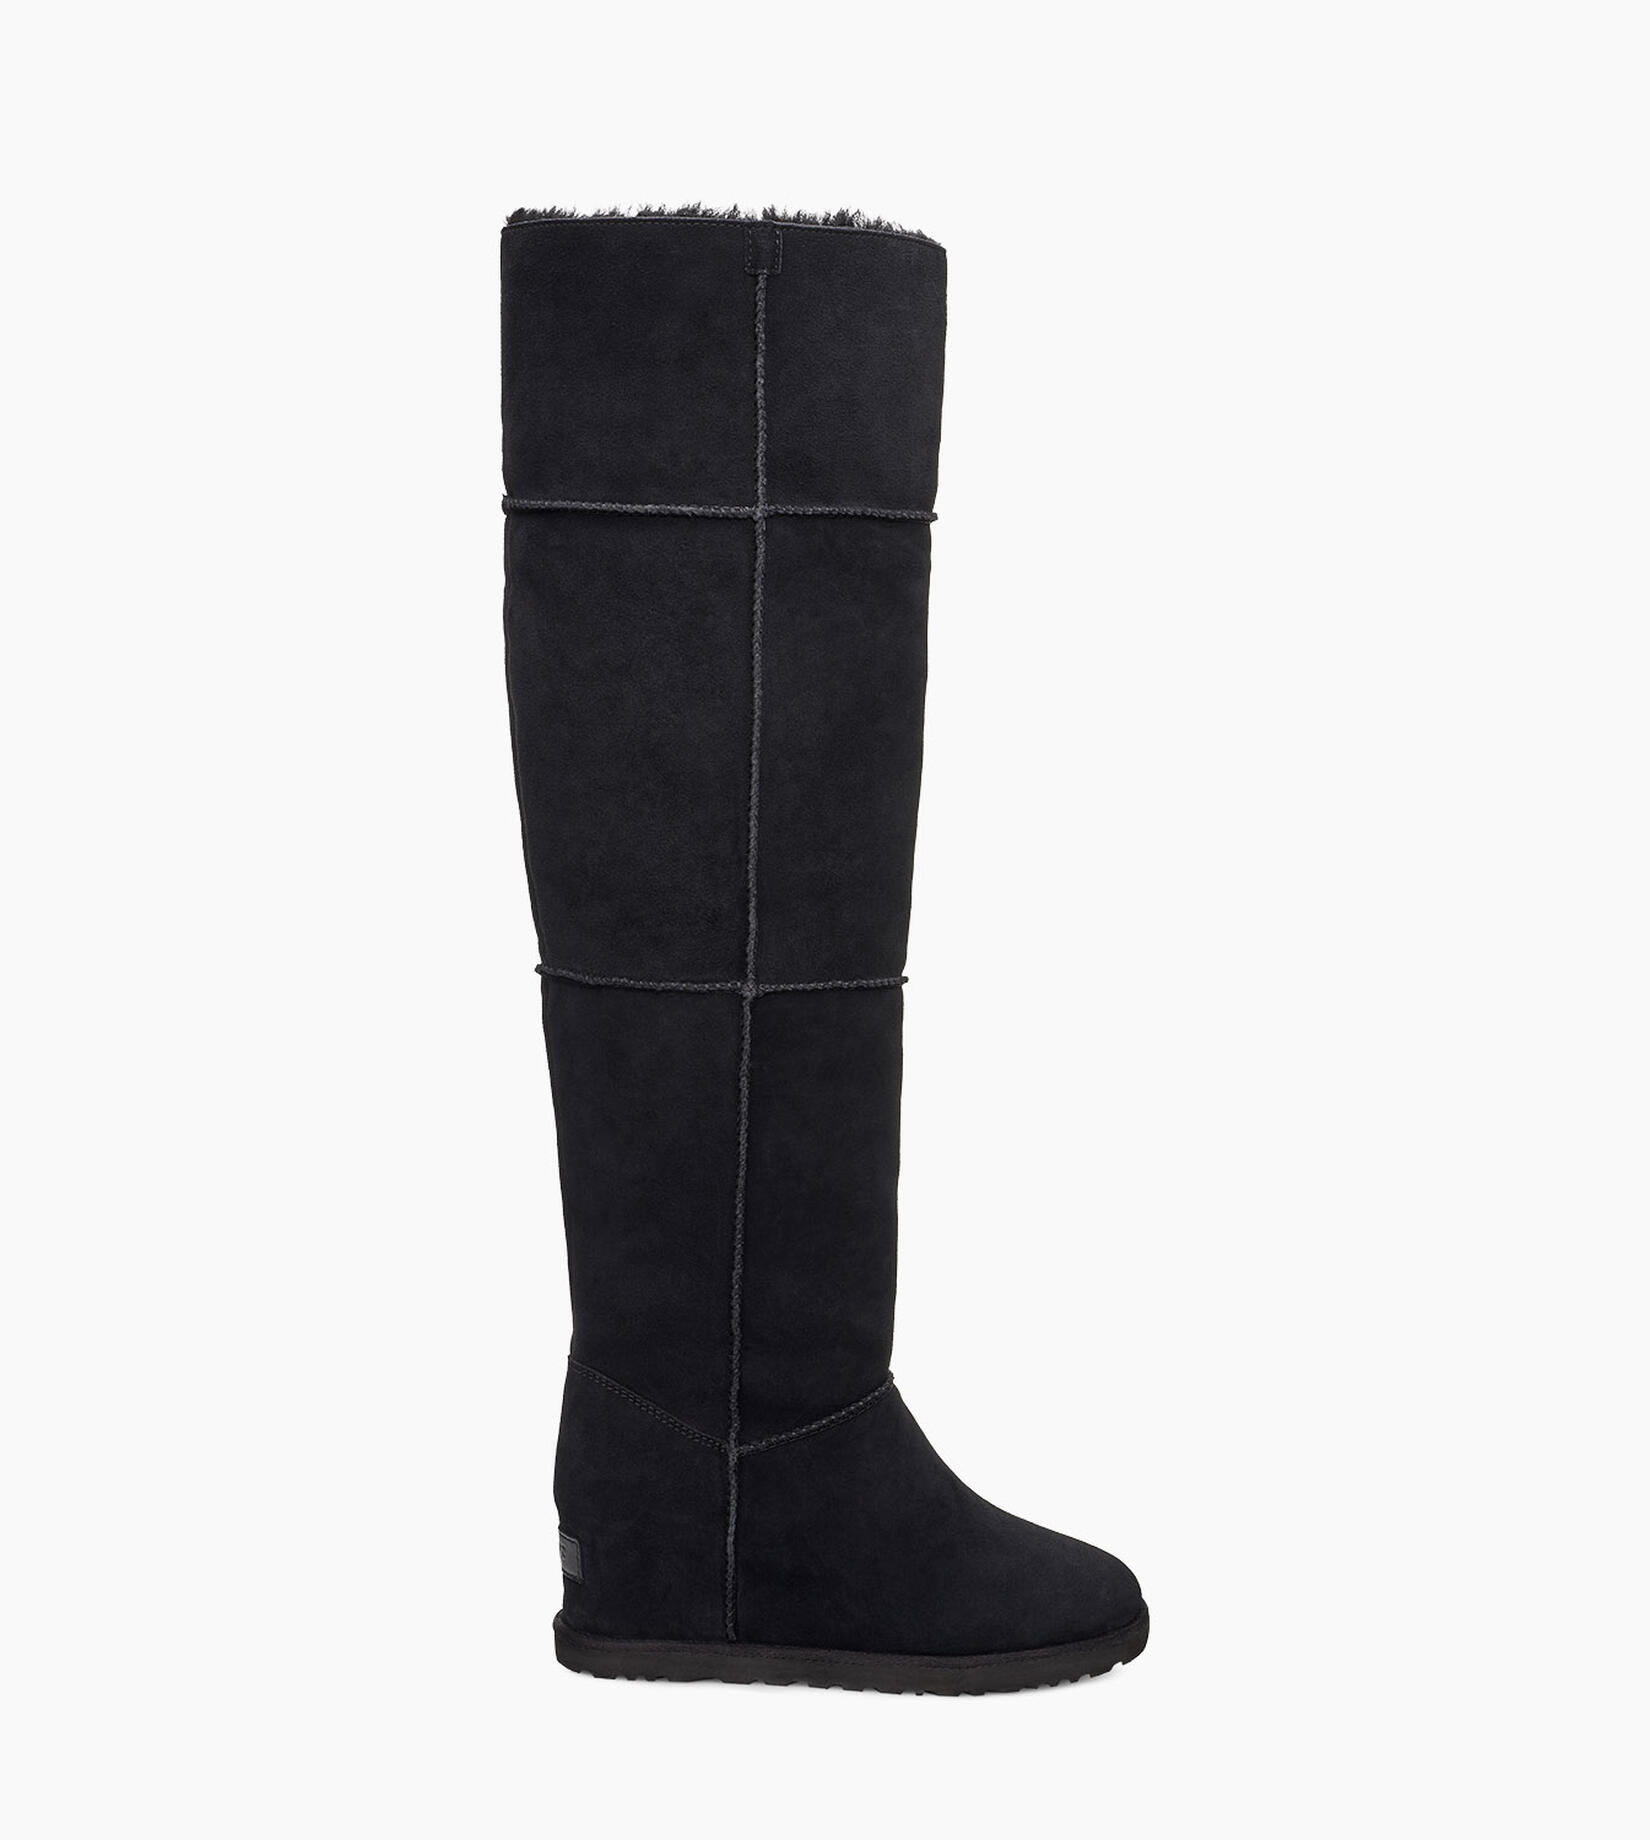 Classic Femme Over The Knee Boot